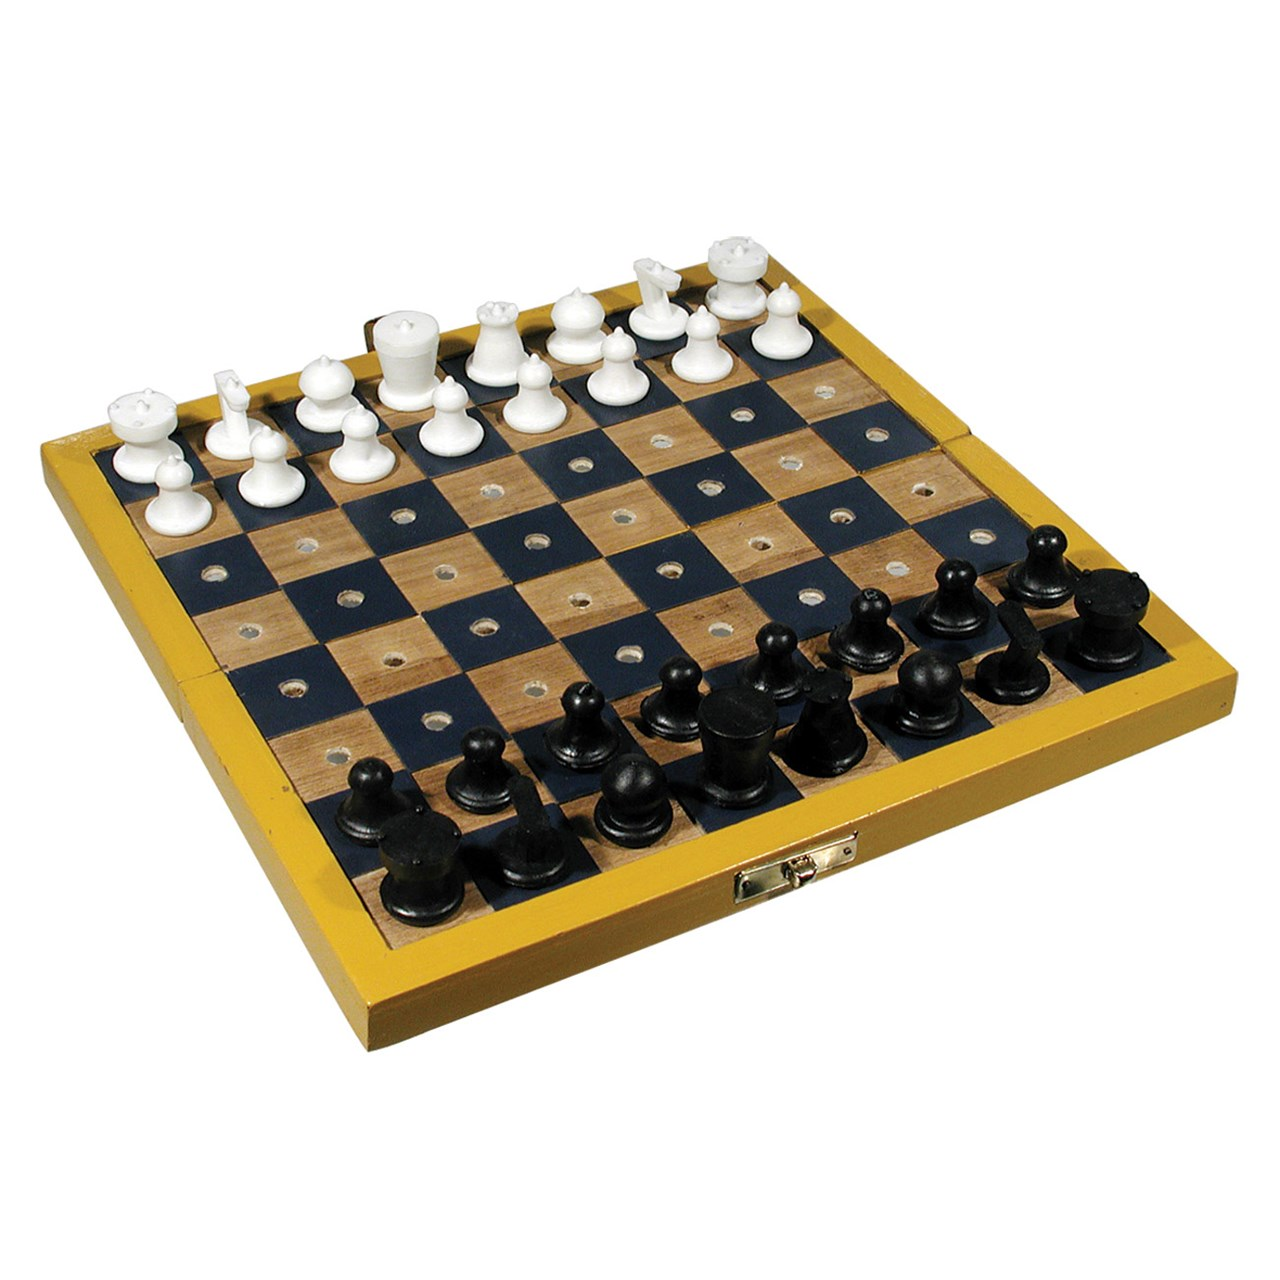 Travel Chess Set for the Blind or Those With Low Vision